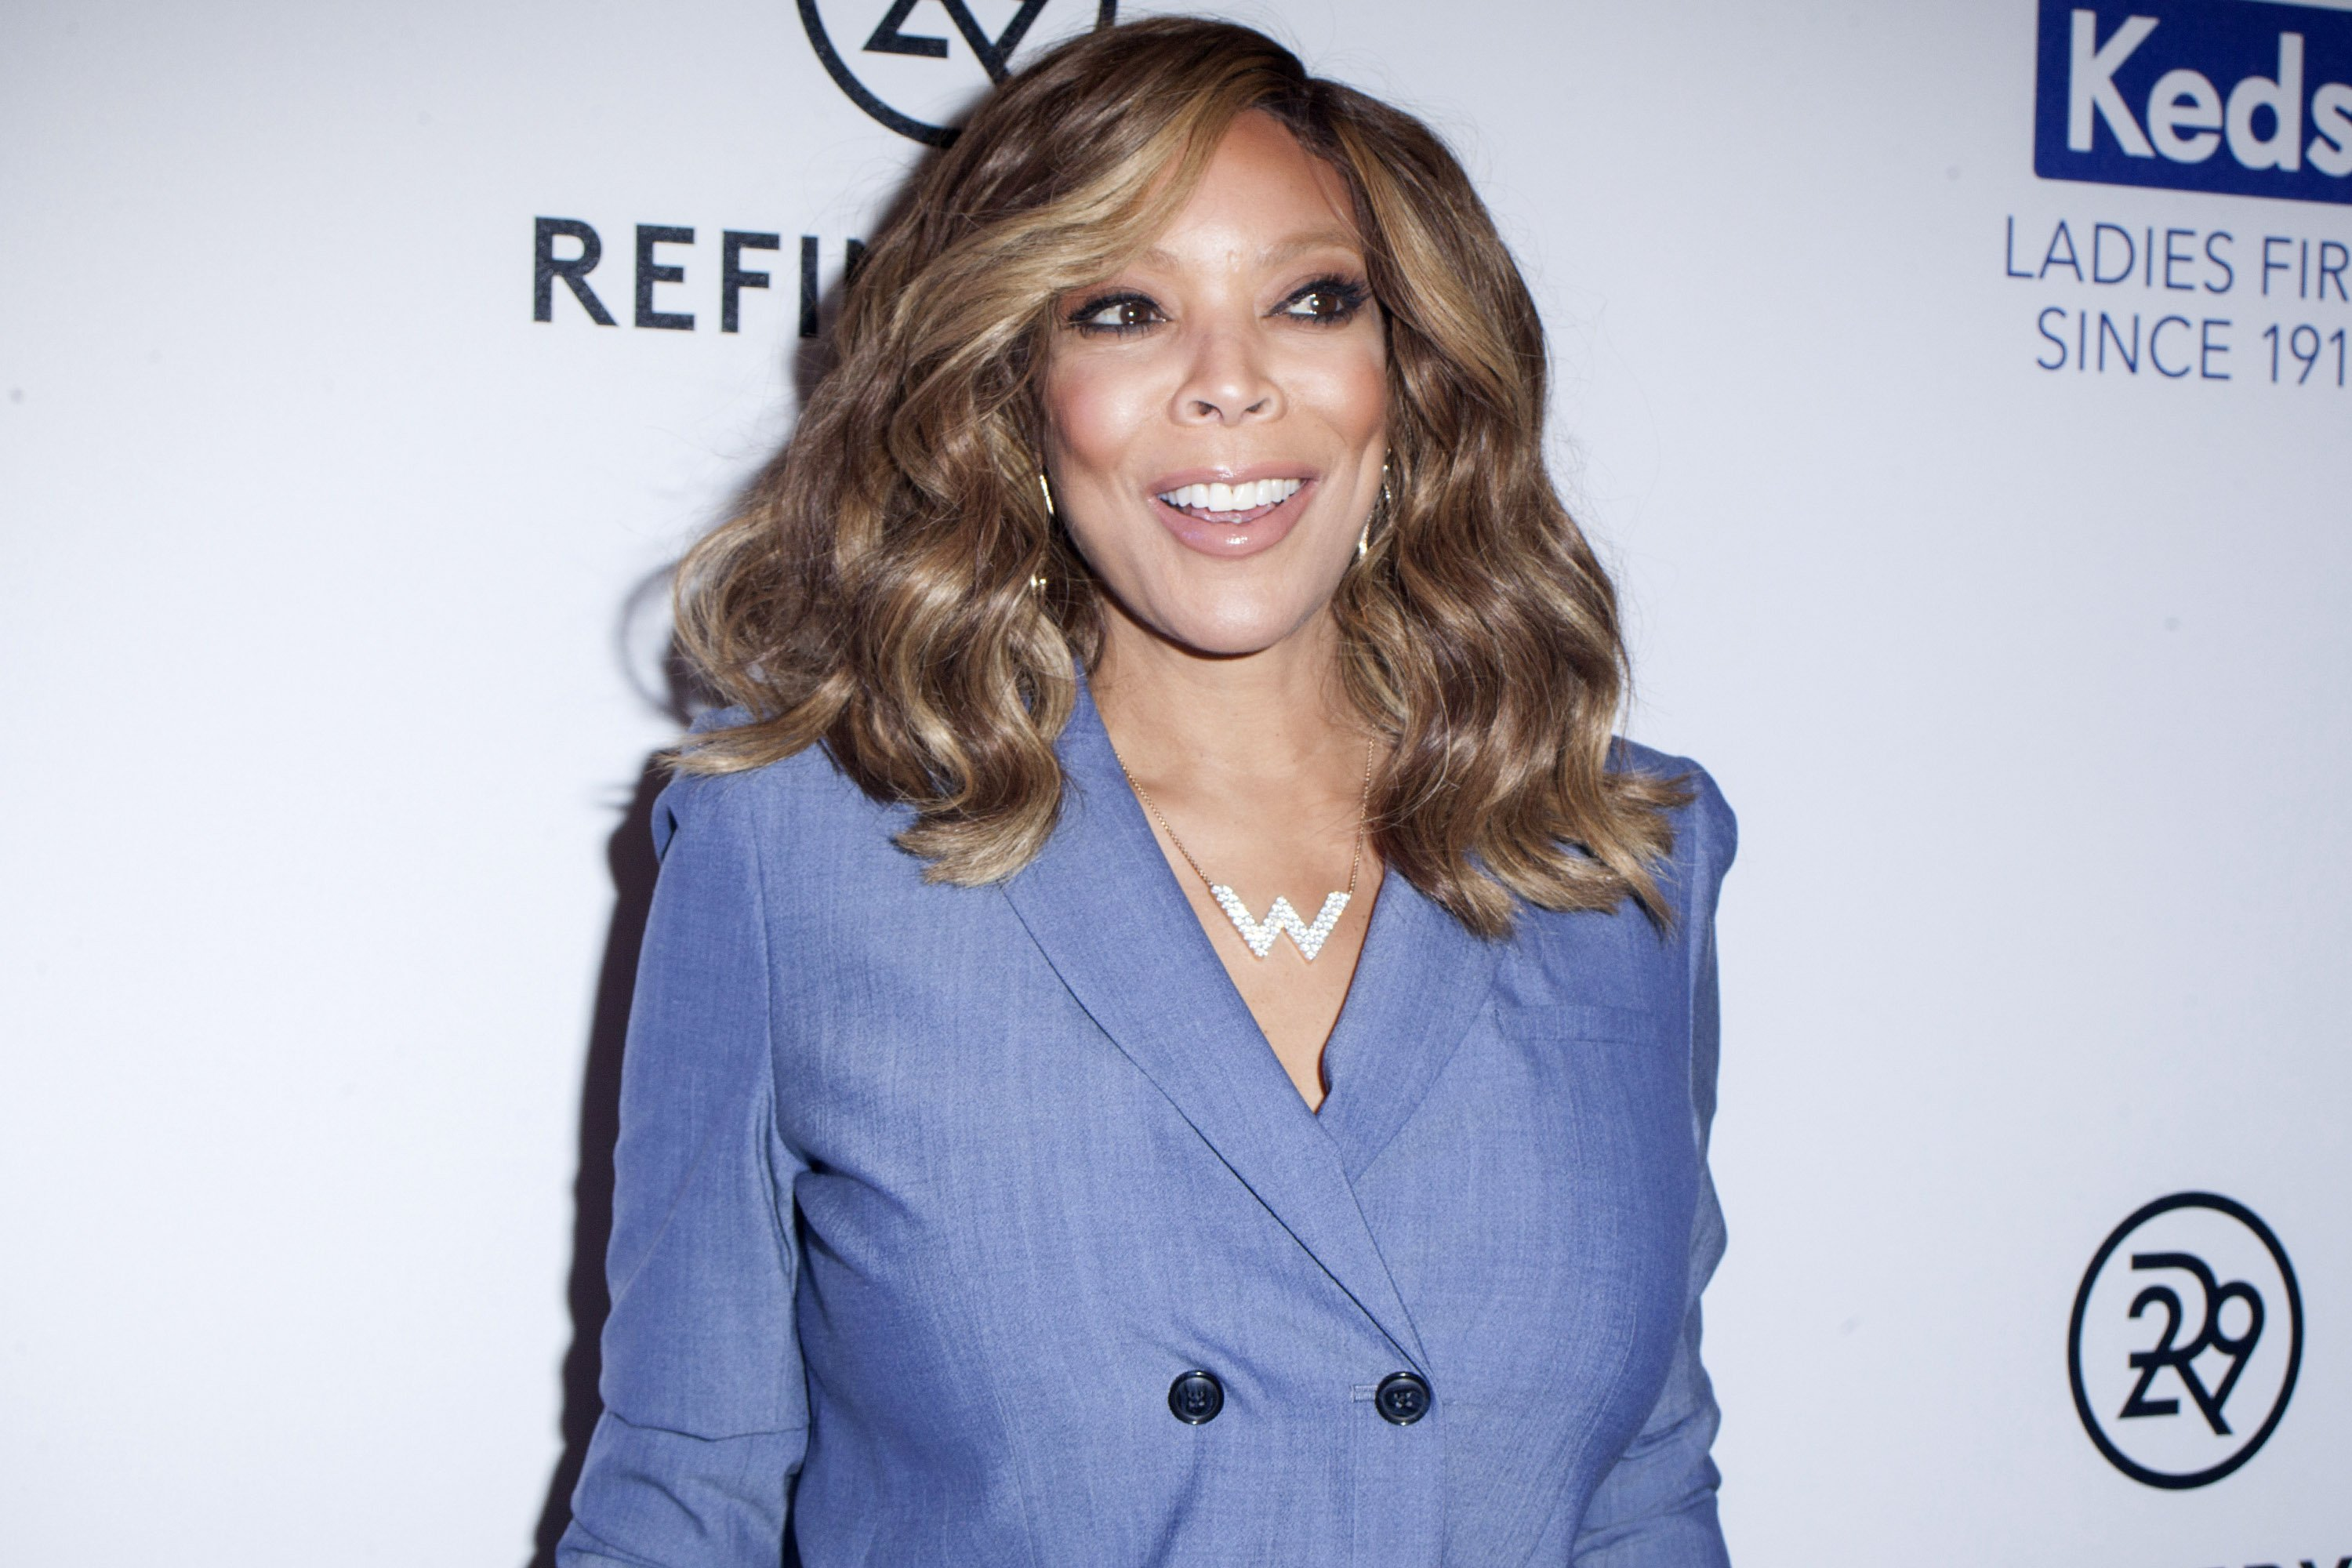 Wendy Williams attends the Keds Centennial Celebration at Center548 on February 10, 2016. | Source: Getty Images